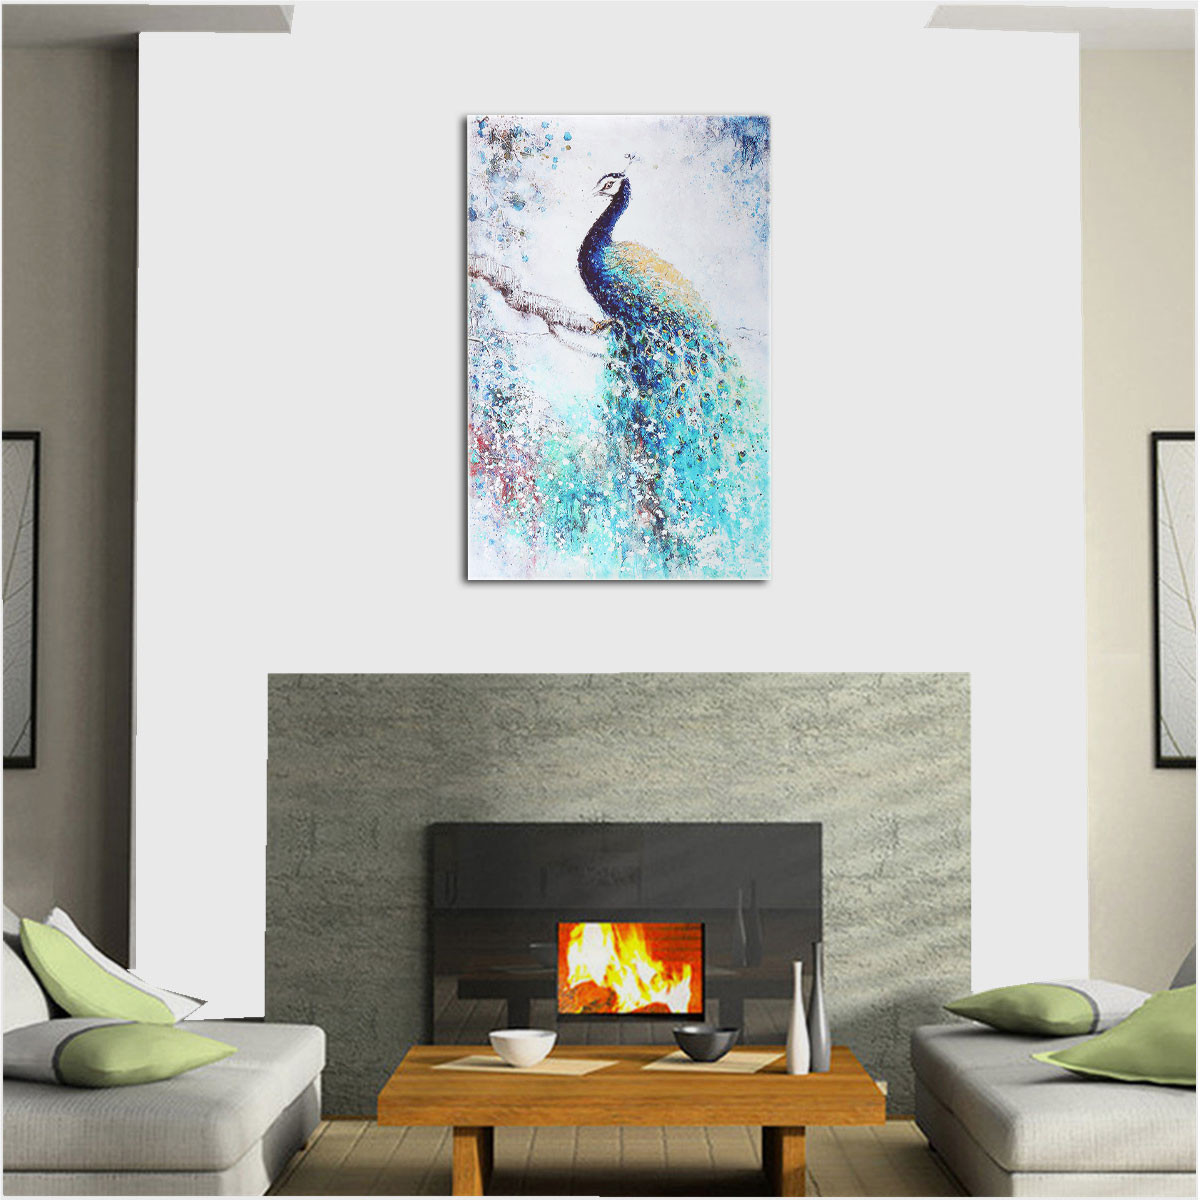 Jeteven Unframed Decor Wall Art Painting Picture Peacock Canvas Print Hanging Picture